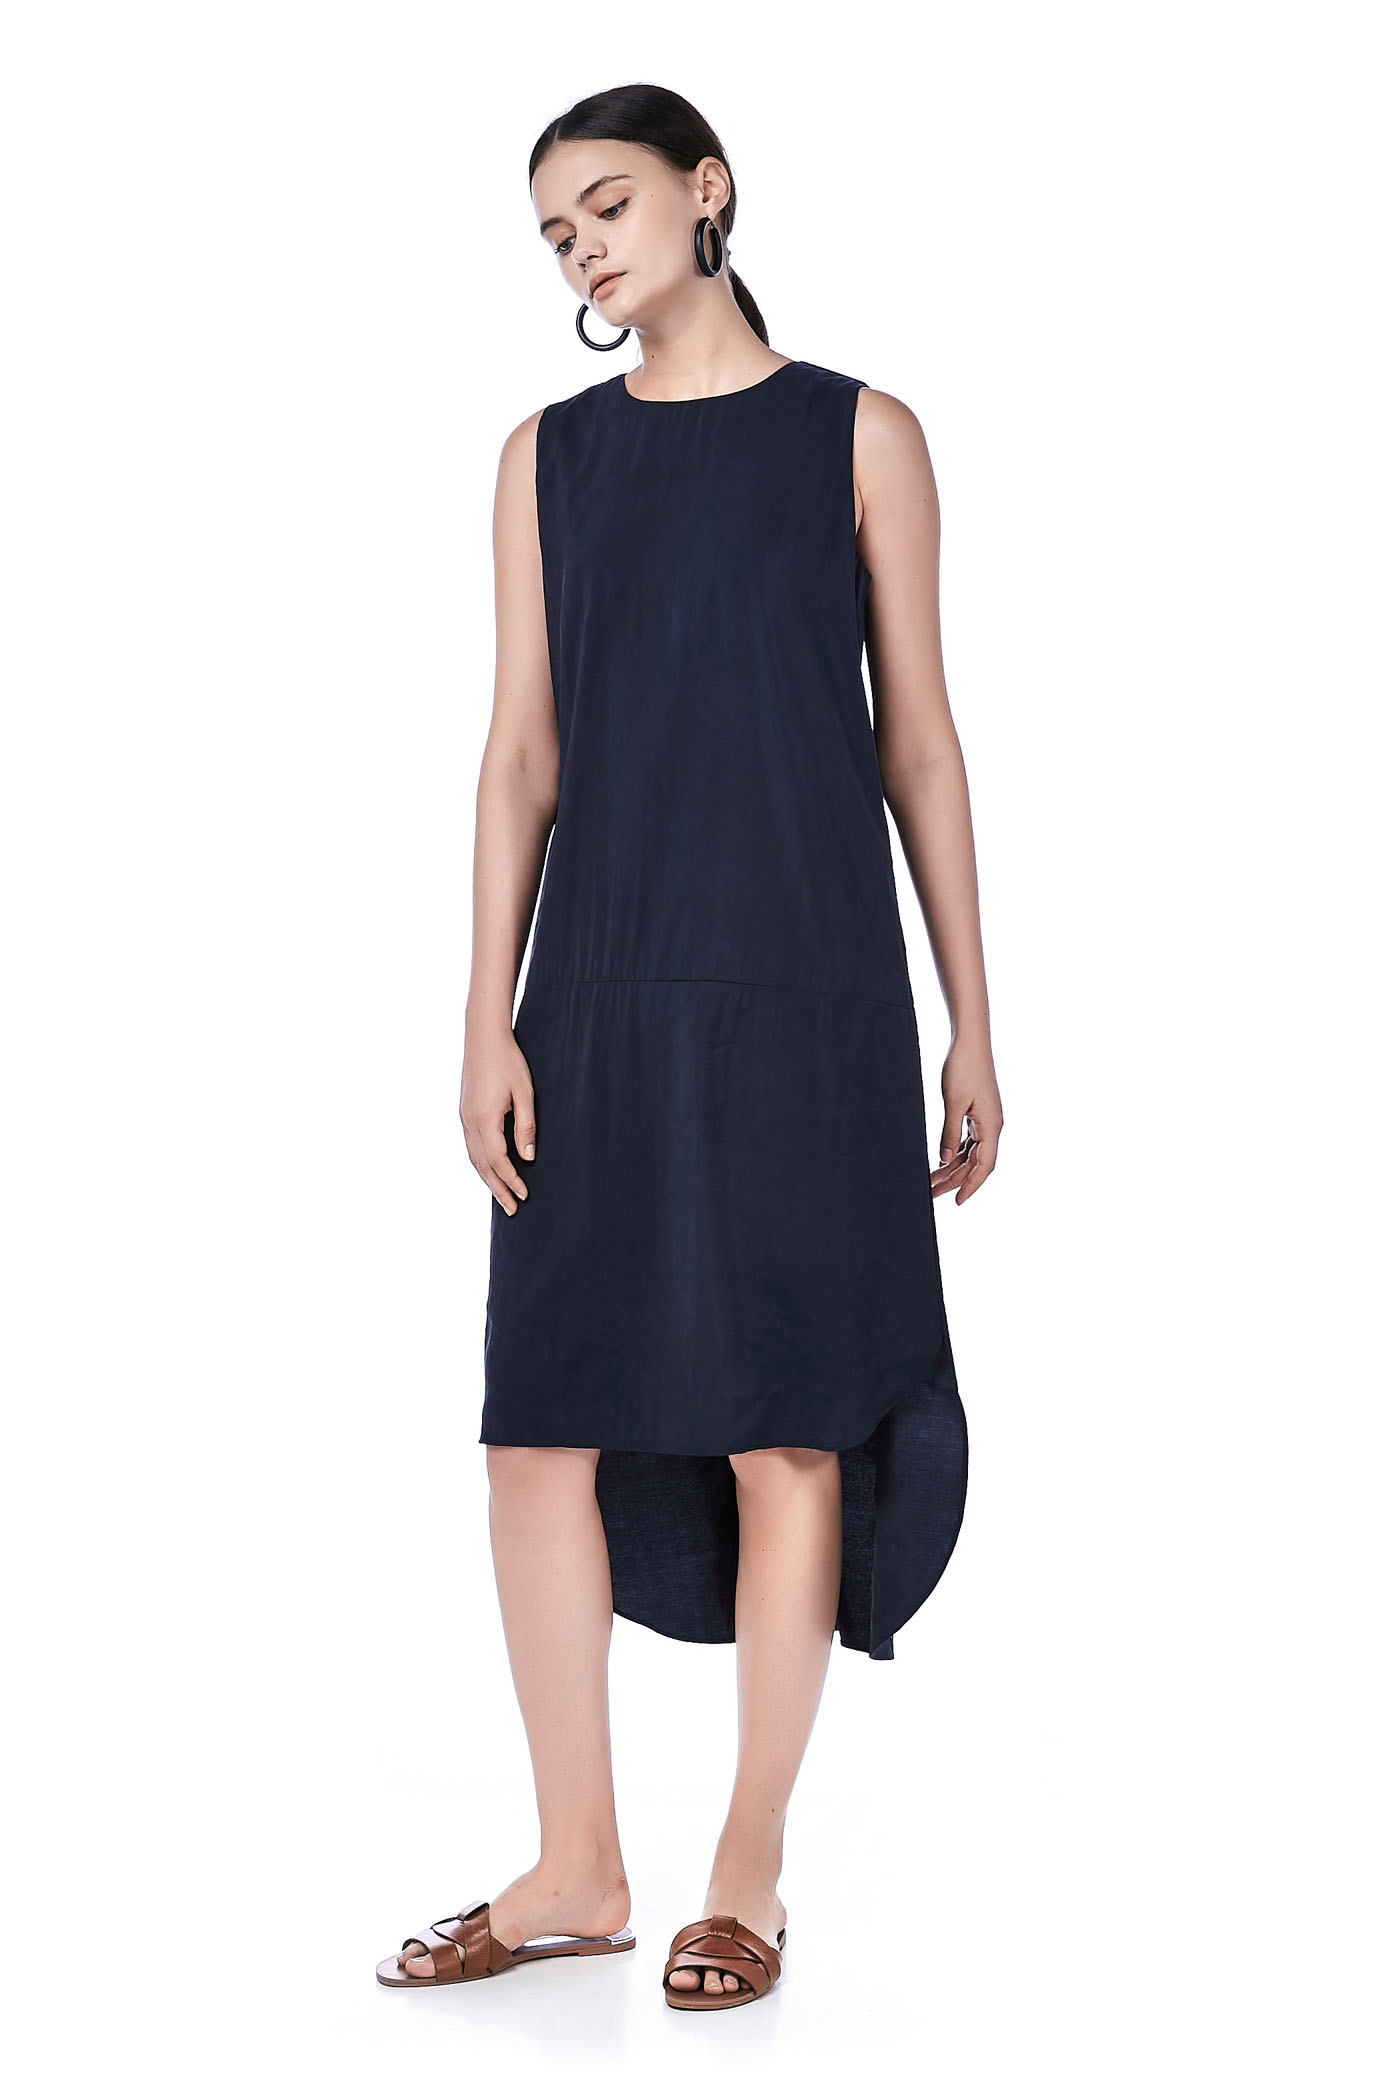 Gershwin Drop-Waist Tank Dress